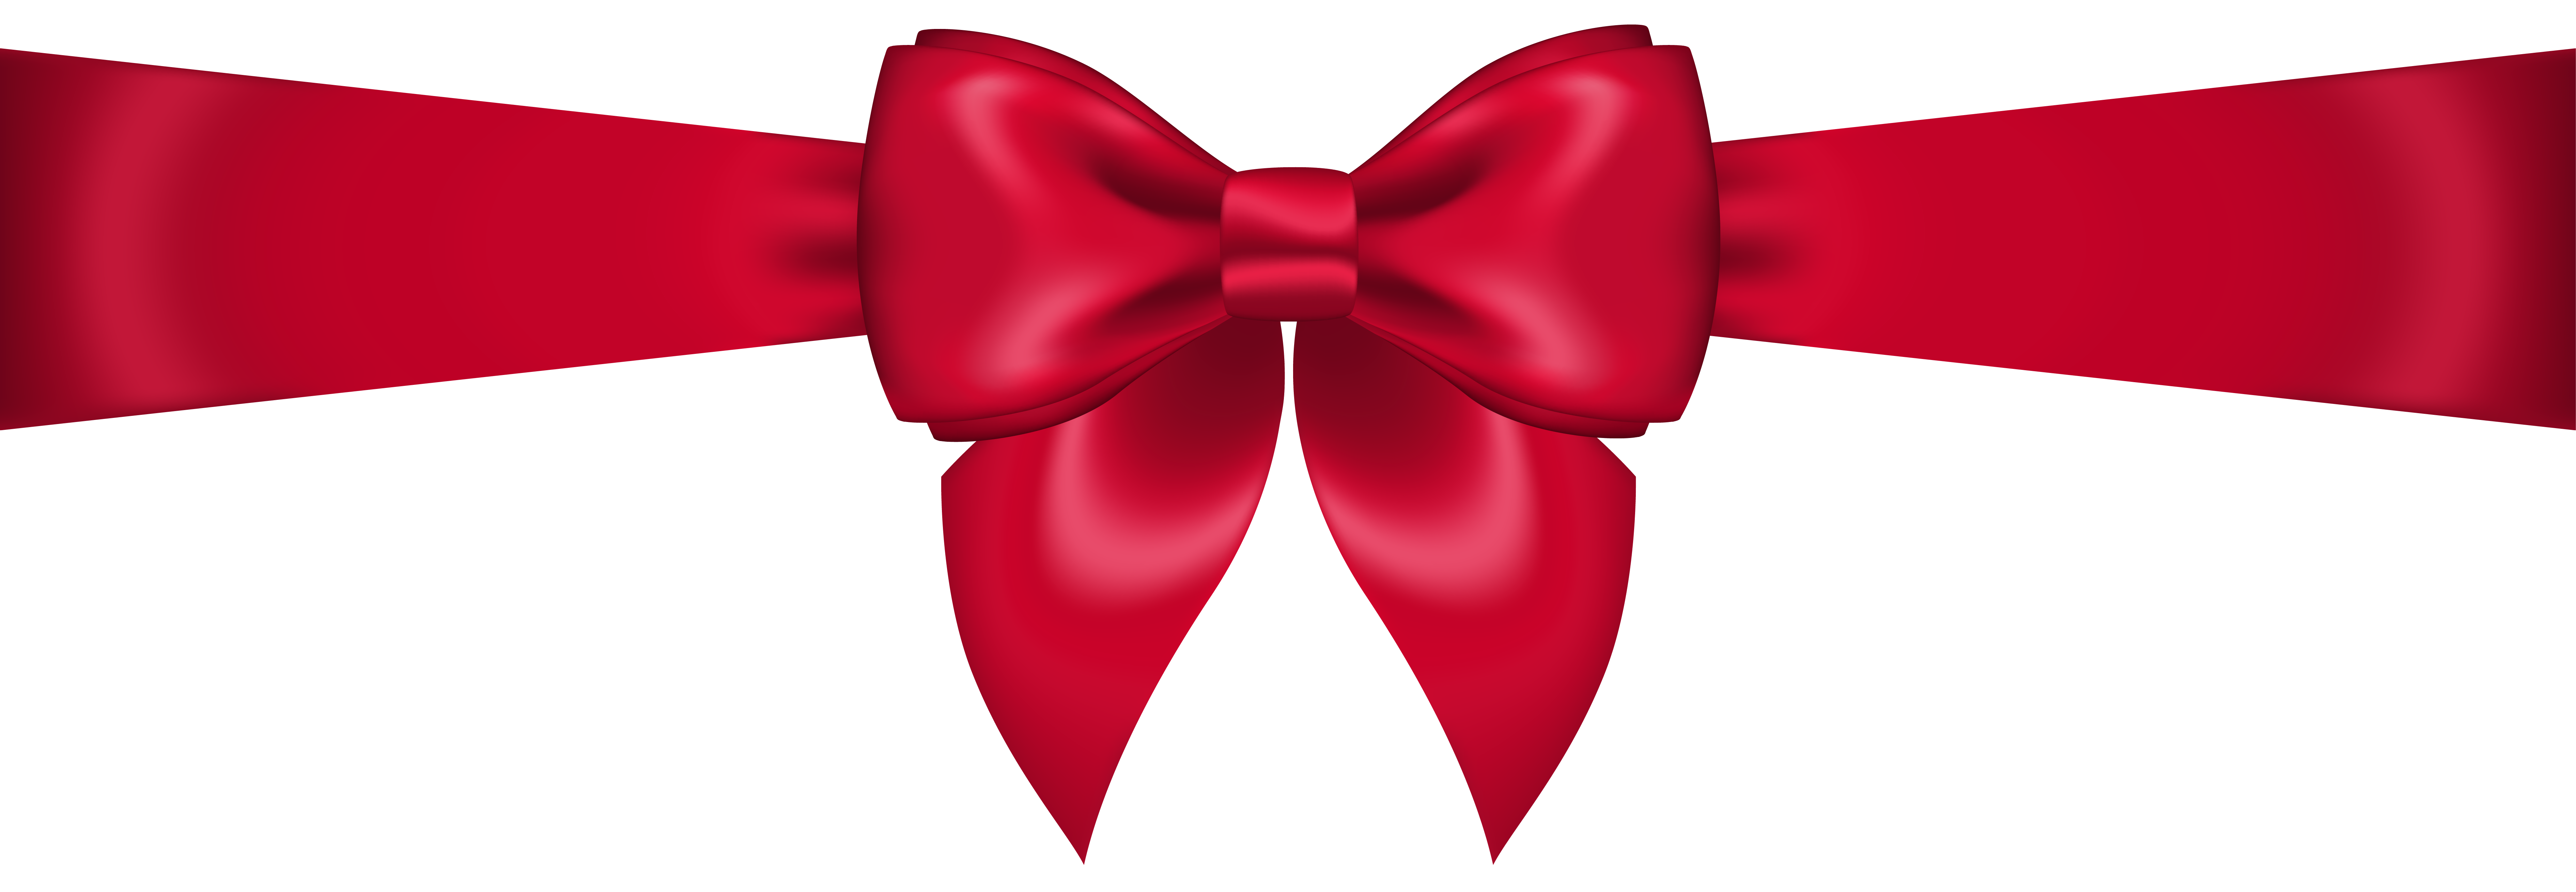 Red hair bow png. Transparent clip art image